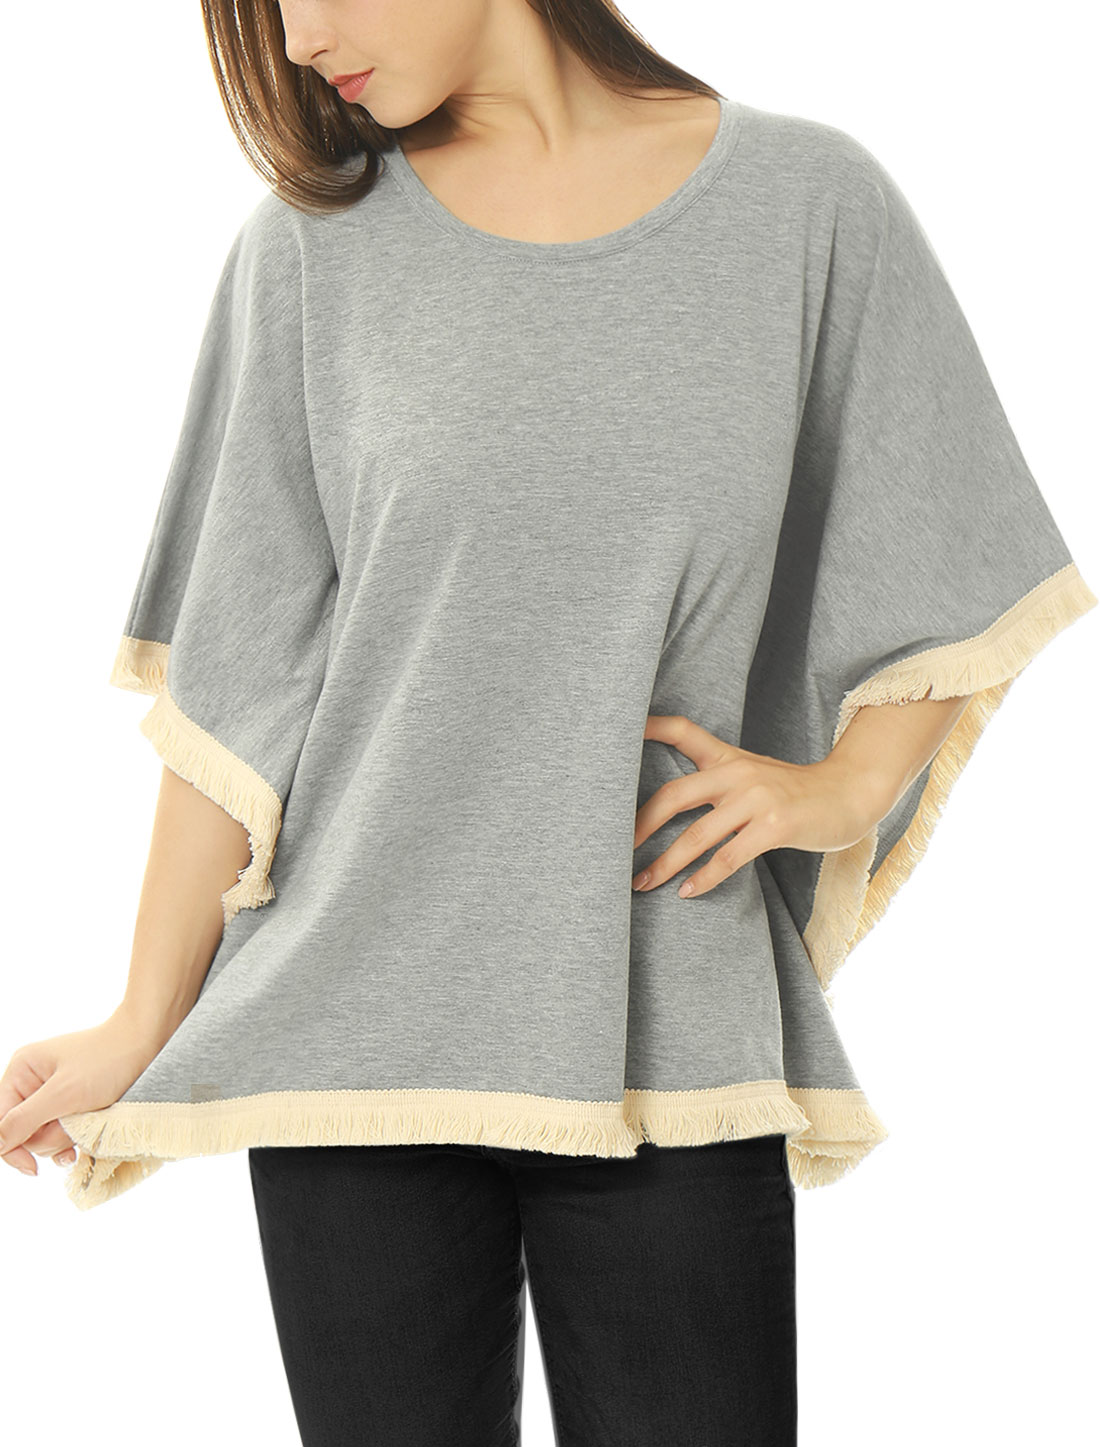 Women Batwing Sleeves Contrast Fringe Oversized Poncho Gray M